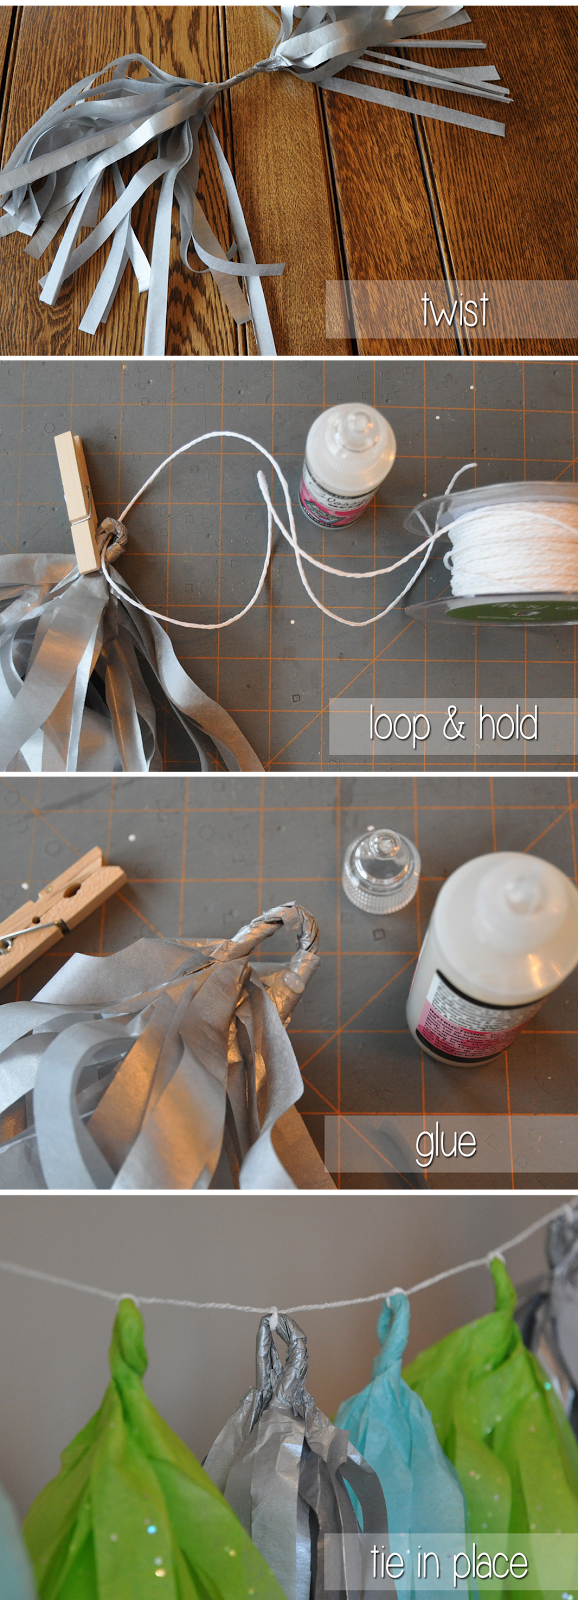 diy tissue paper tassel garlands | by Lorrie Everitt for CreativeBag.com